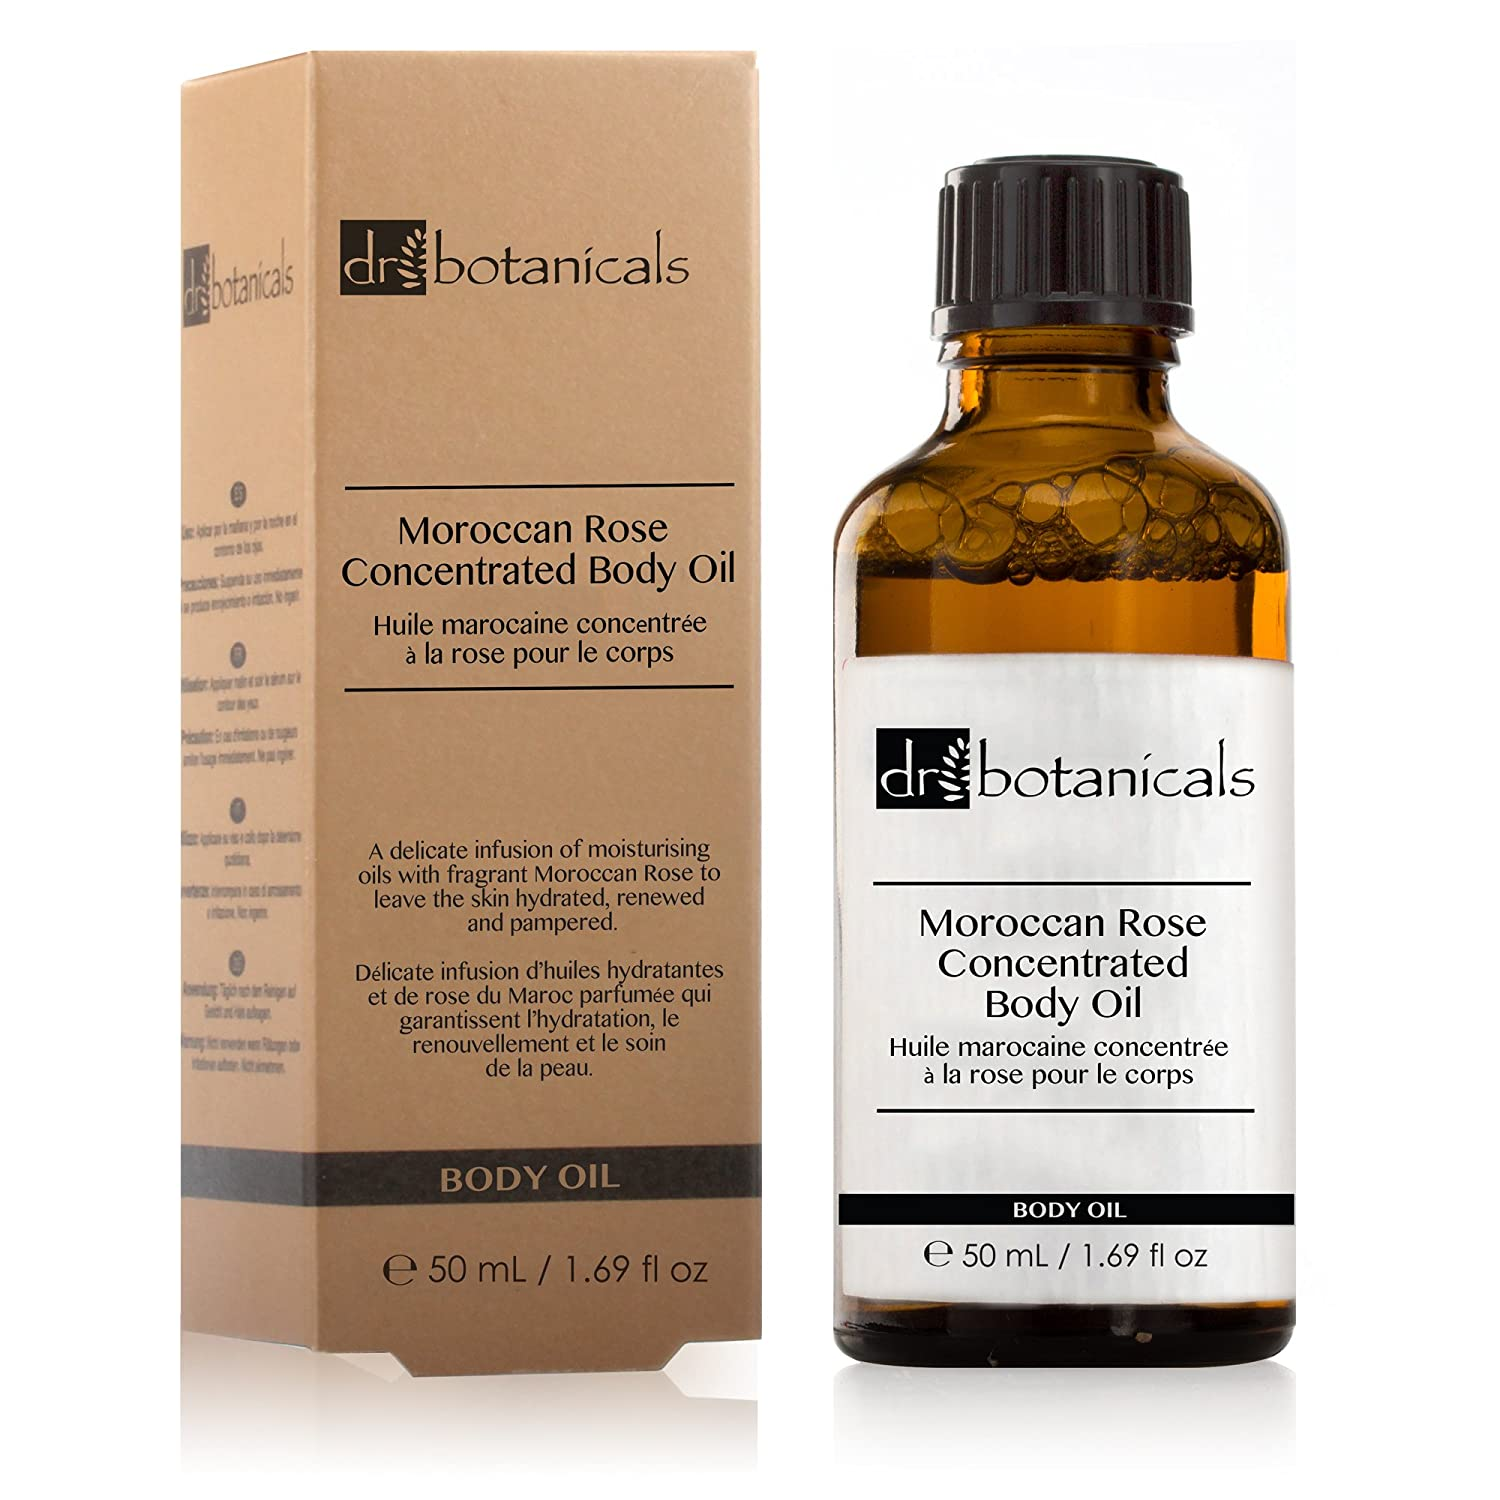 Dr Botanicals Moroccan Rose Concentrated Body Oil with Vitamins and Natural Almond Oils - Remove Instantly skin Imperfections - Made in UK - 50ml